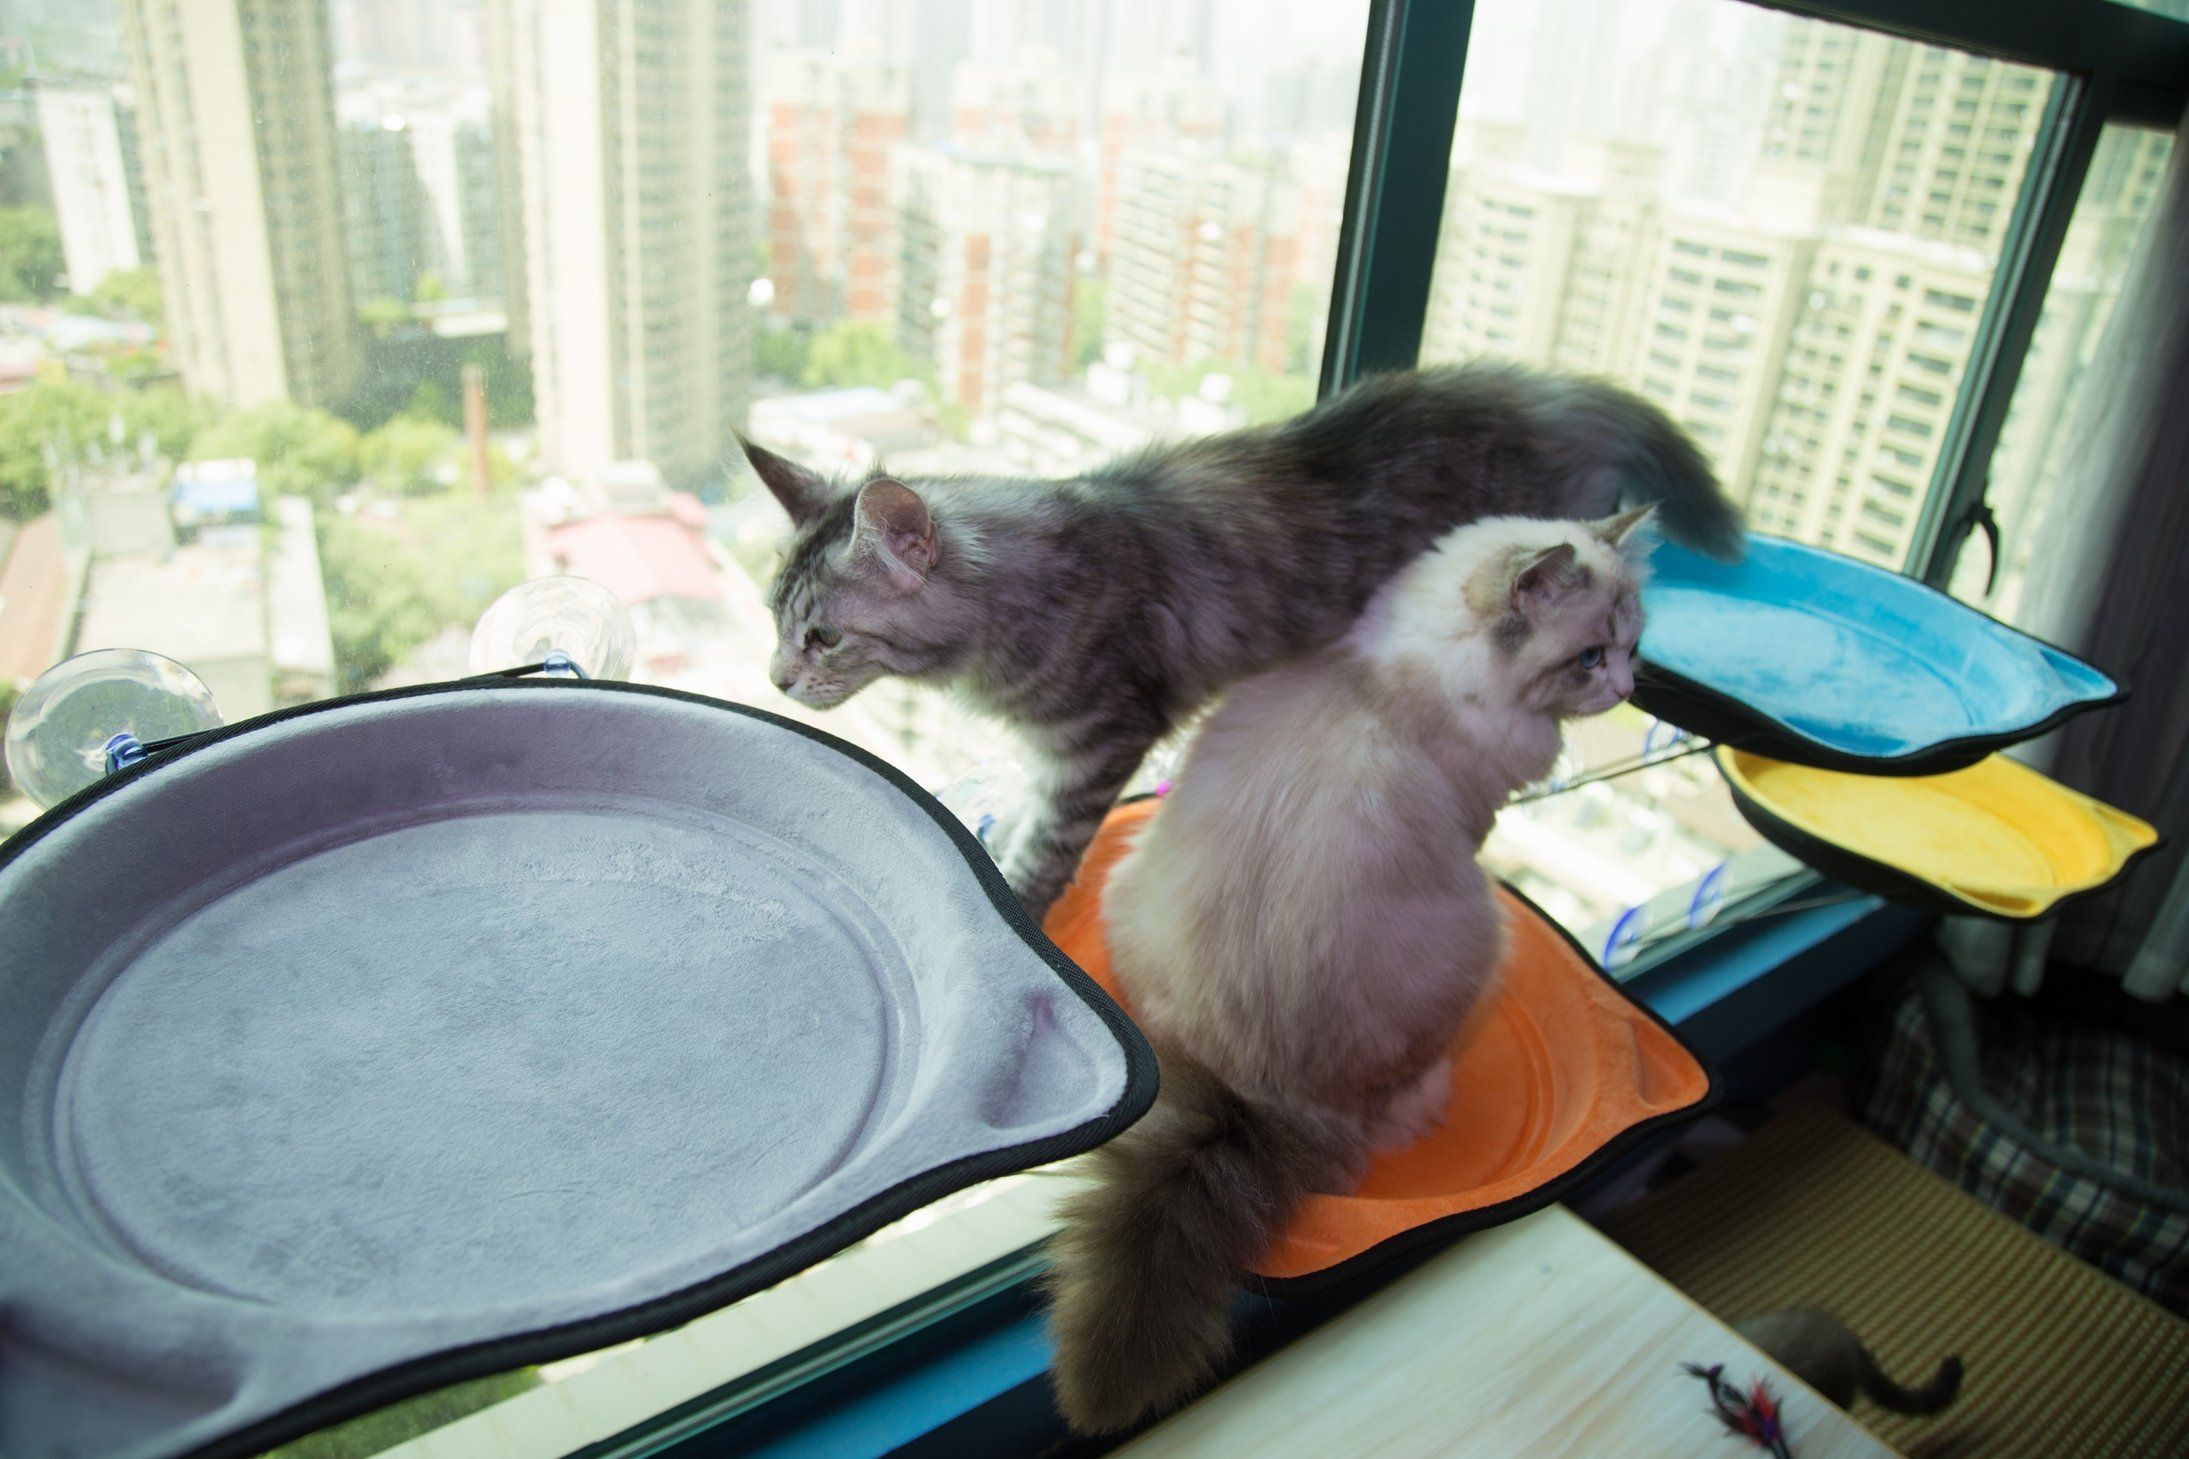 Remarkable Cat Bed Window Seat Perch Sun Bed For Kitten Large Cat Puppy Dailytribune Chair Design For Home Dailytribuneorg